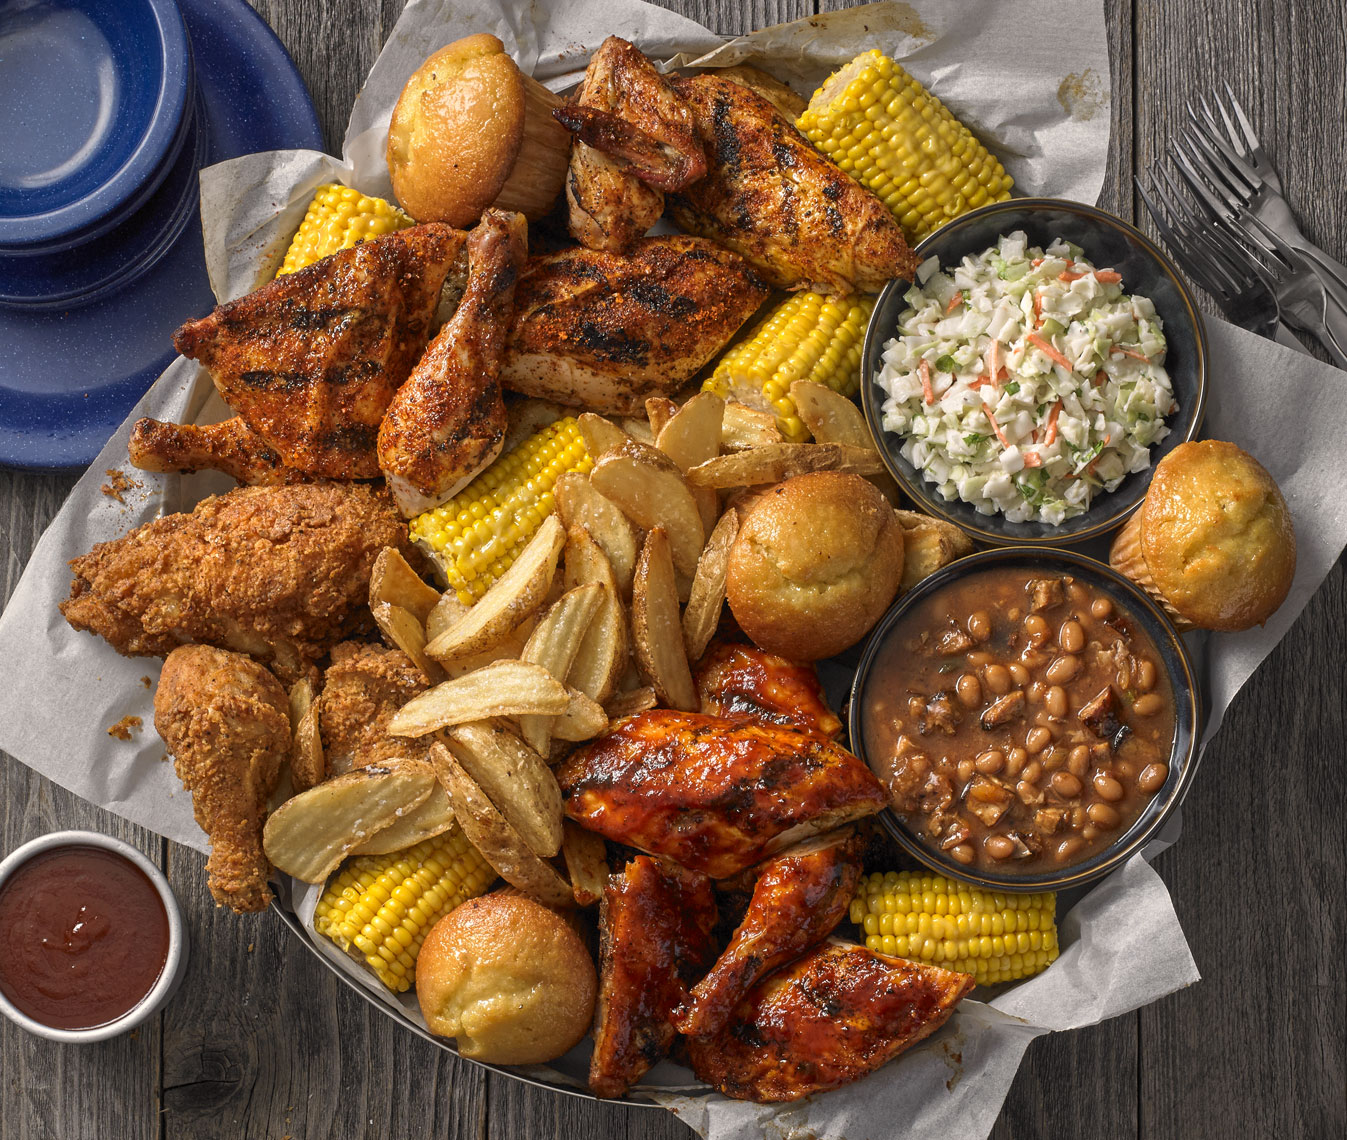 BBQ chicken/various sides/top down on wood/food photography